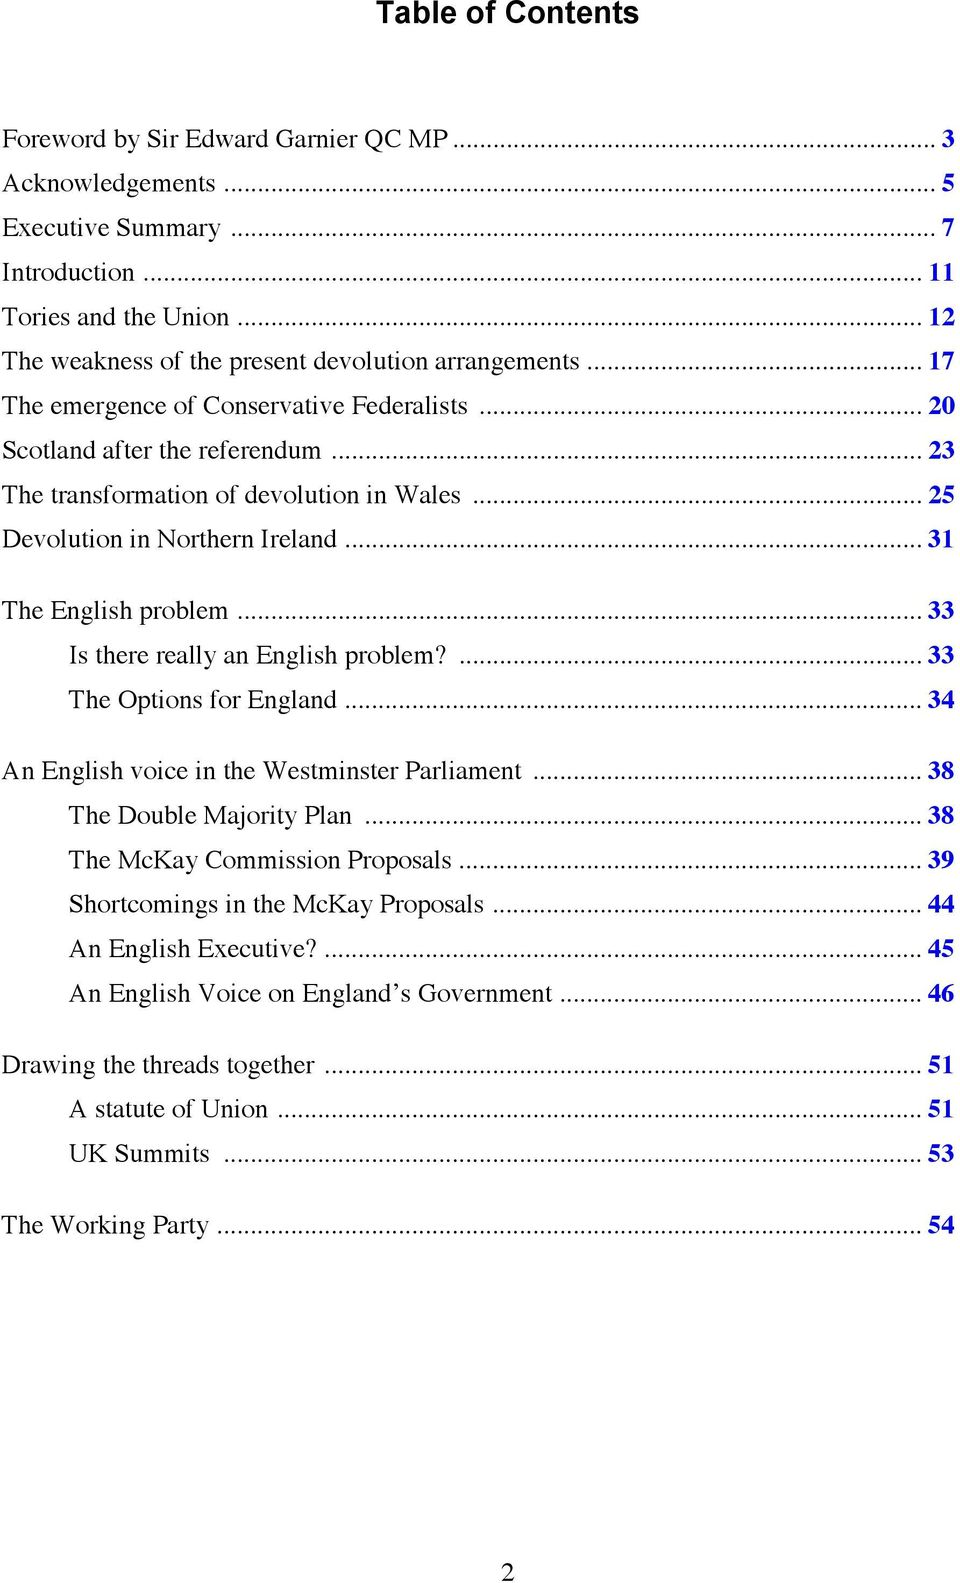 .. 25 Devolution in Northern Ireland... 31 The English problem... 33 Is there really an English problem?... 33 The Options for England... 34 An English voice in the Westminster Parliament.